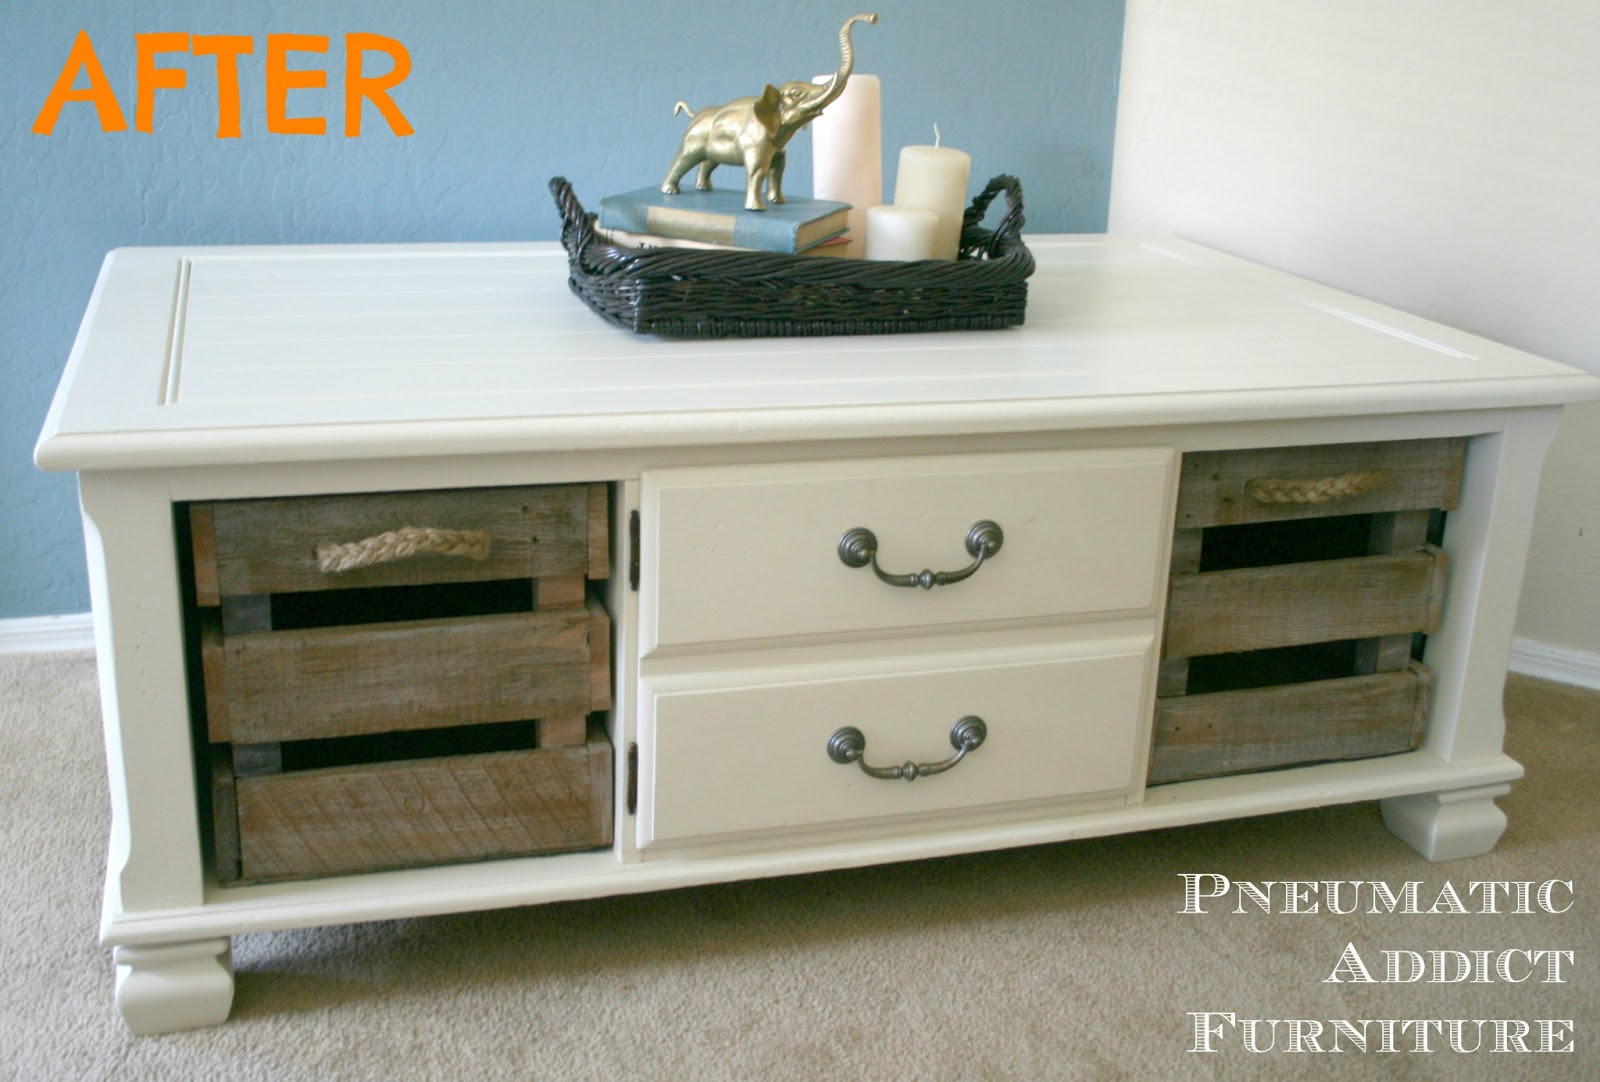 Pneumatic Addict CottageStyle Coffee Table Transformation